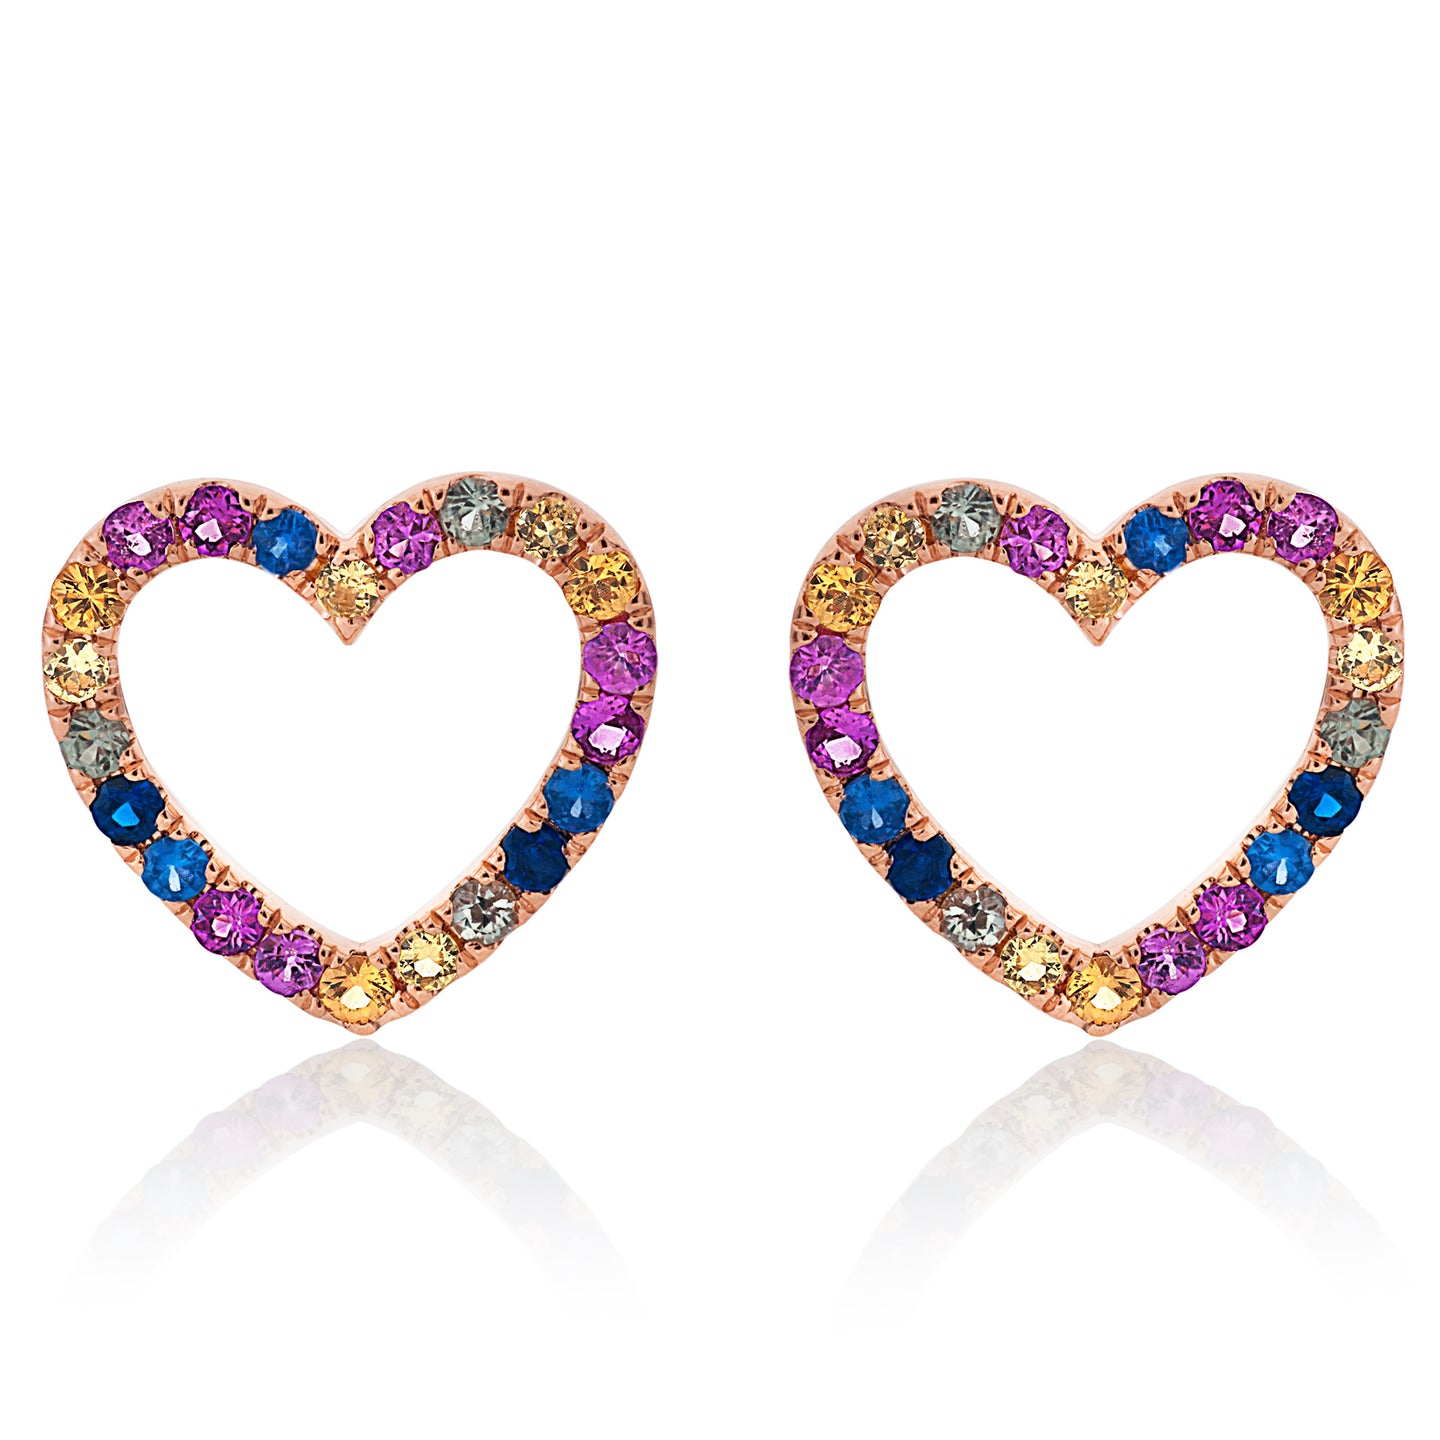 Rainbow Heart Sapphire Stud Earrings